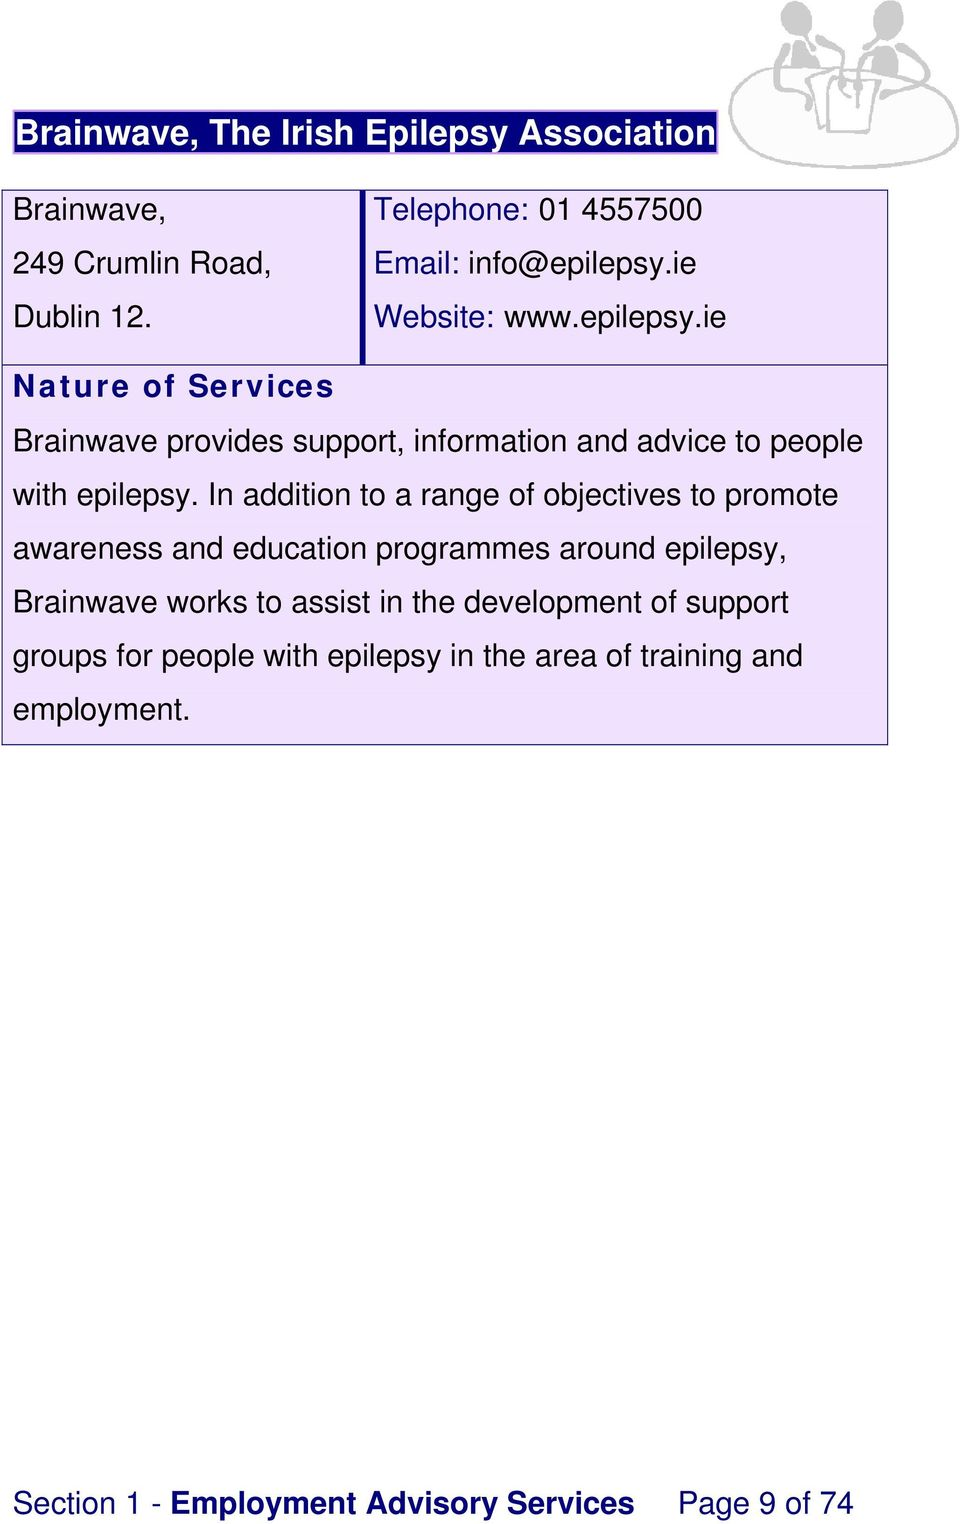 In addition to a range of objectives to promote awareness and education programmes around epilepsy, Brainwave works to assist